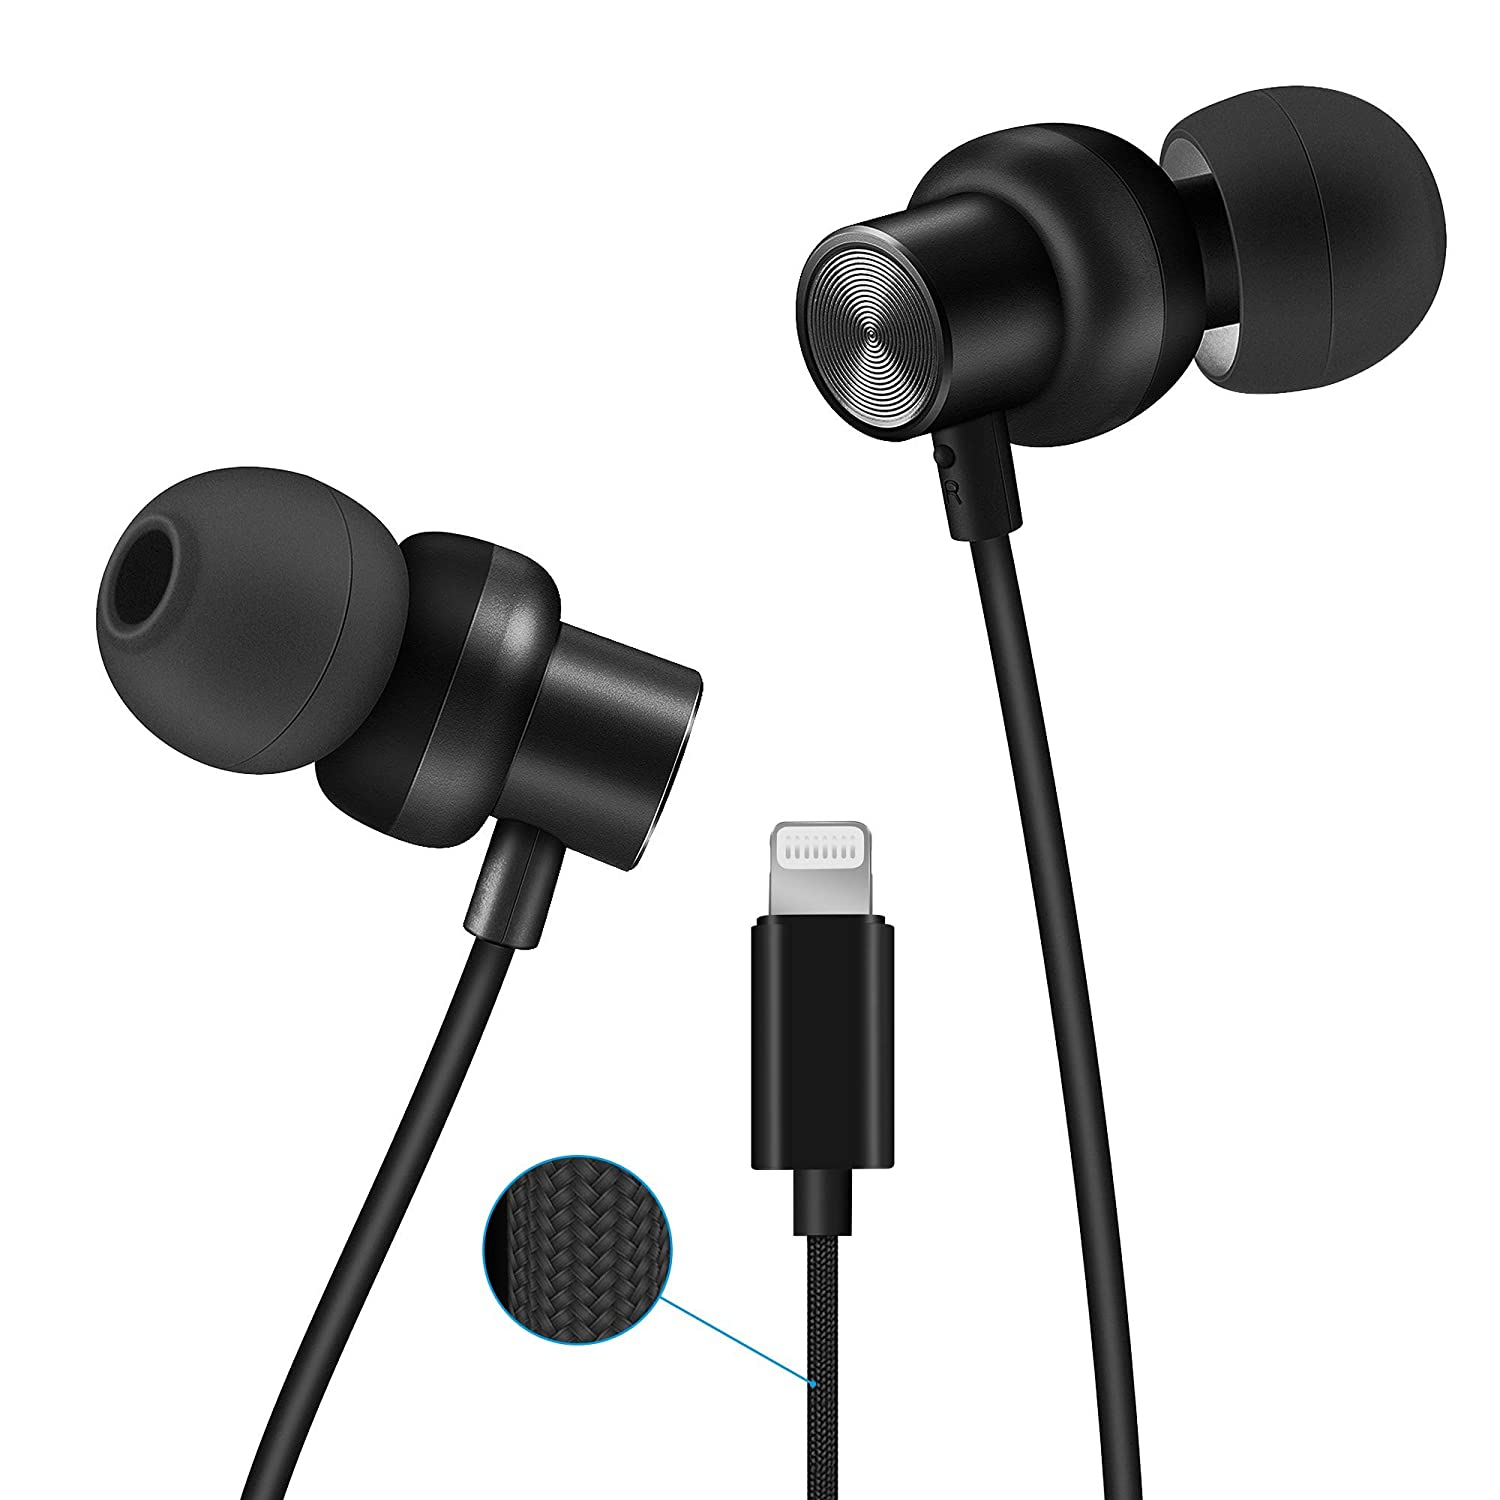 PALOVUE Earflow in-Ear Lightning Headphone Magnetic Earphone MFi Certified Earbuds with Microphone Controller for iPhone X iPhone 8 P iPhone 7 P Classic Black